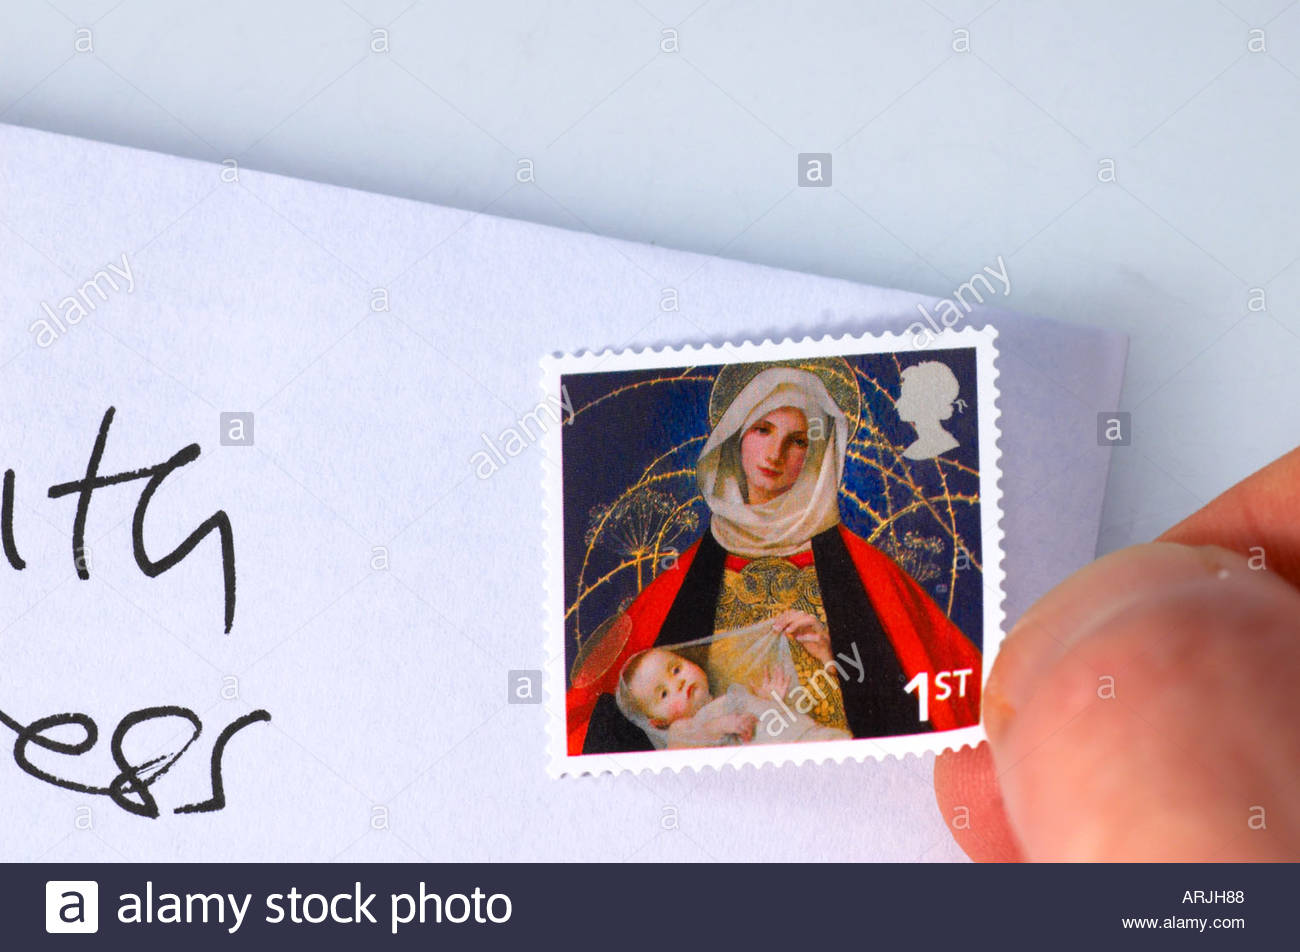 Placing a Christmas first class stamp on a envelope - Stock Image